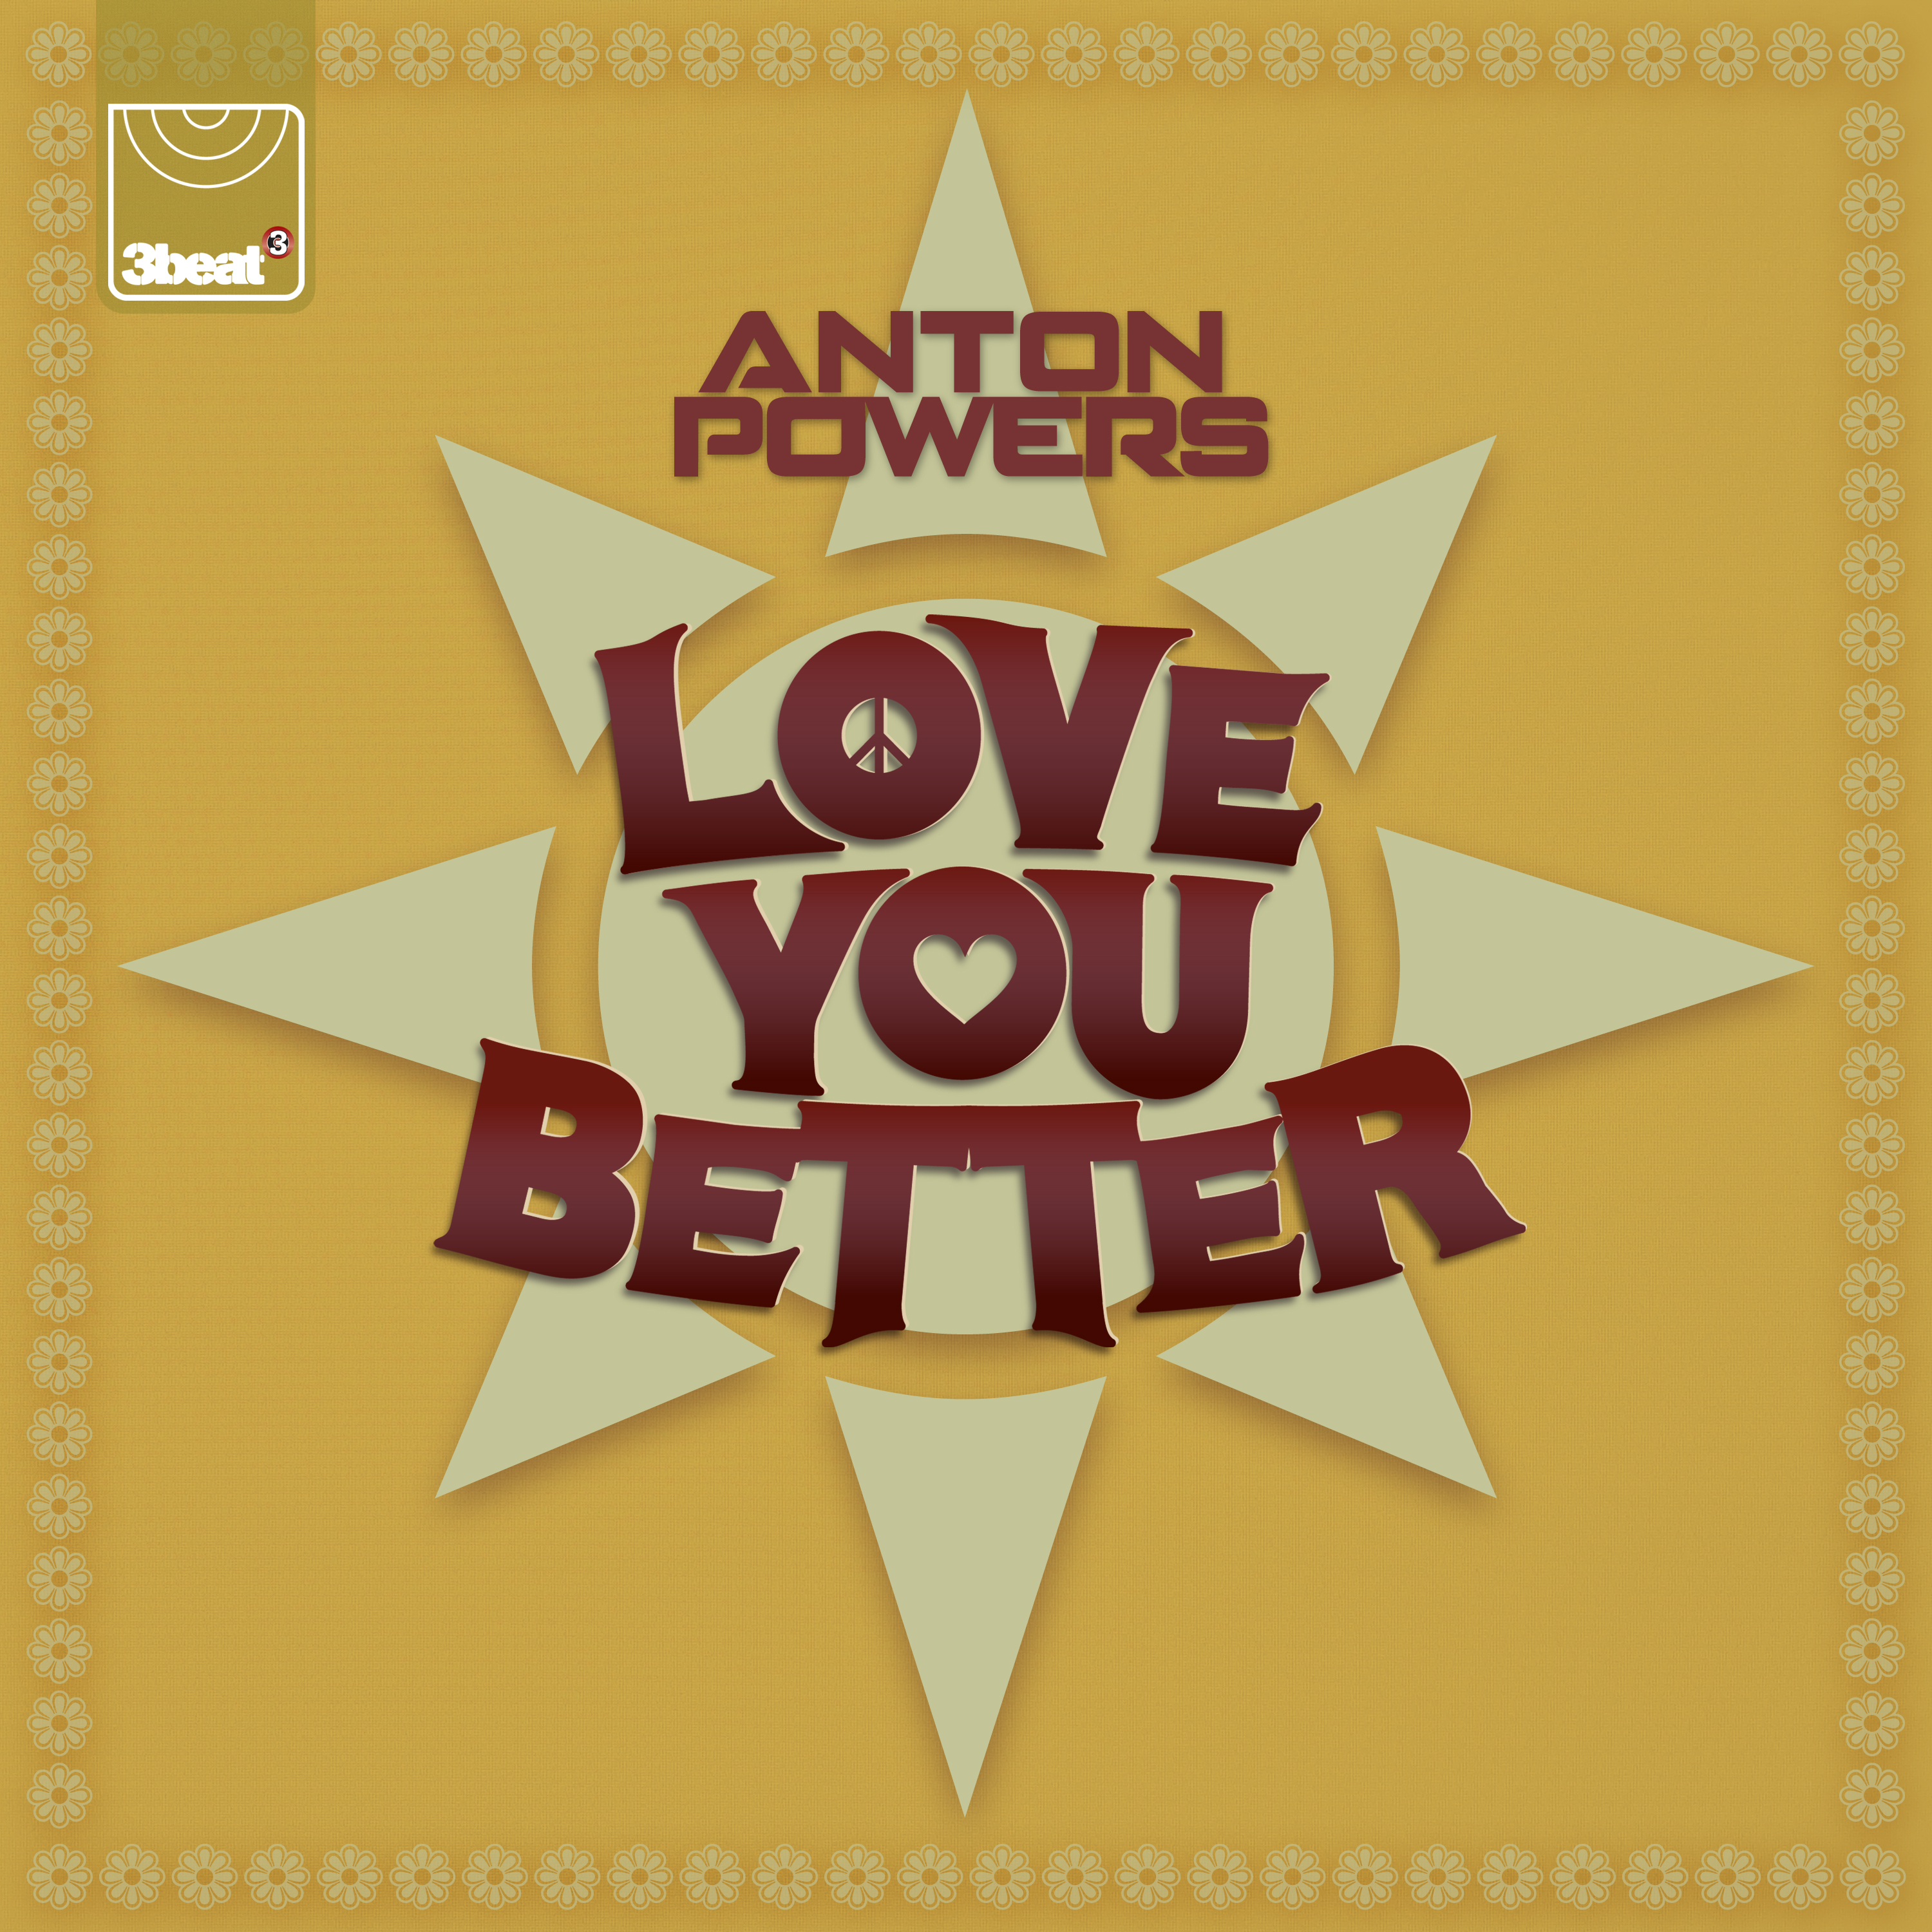 3beat233_anton_powers_-_love_you_better_packshot.jpg